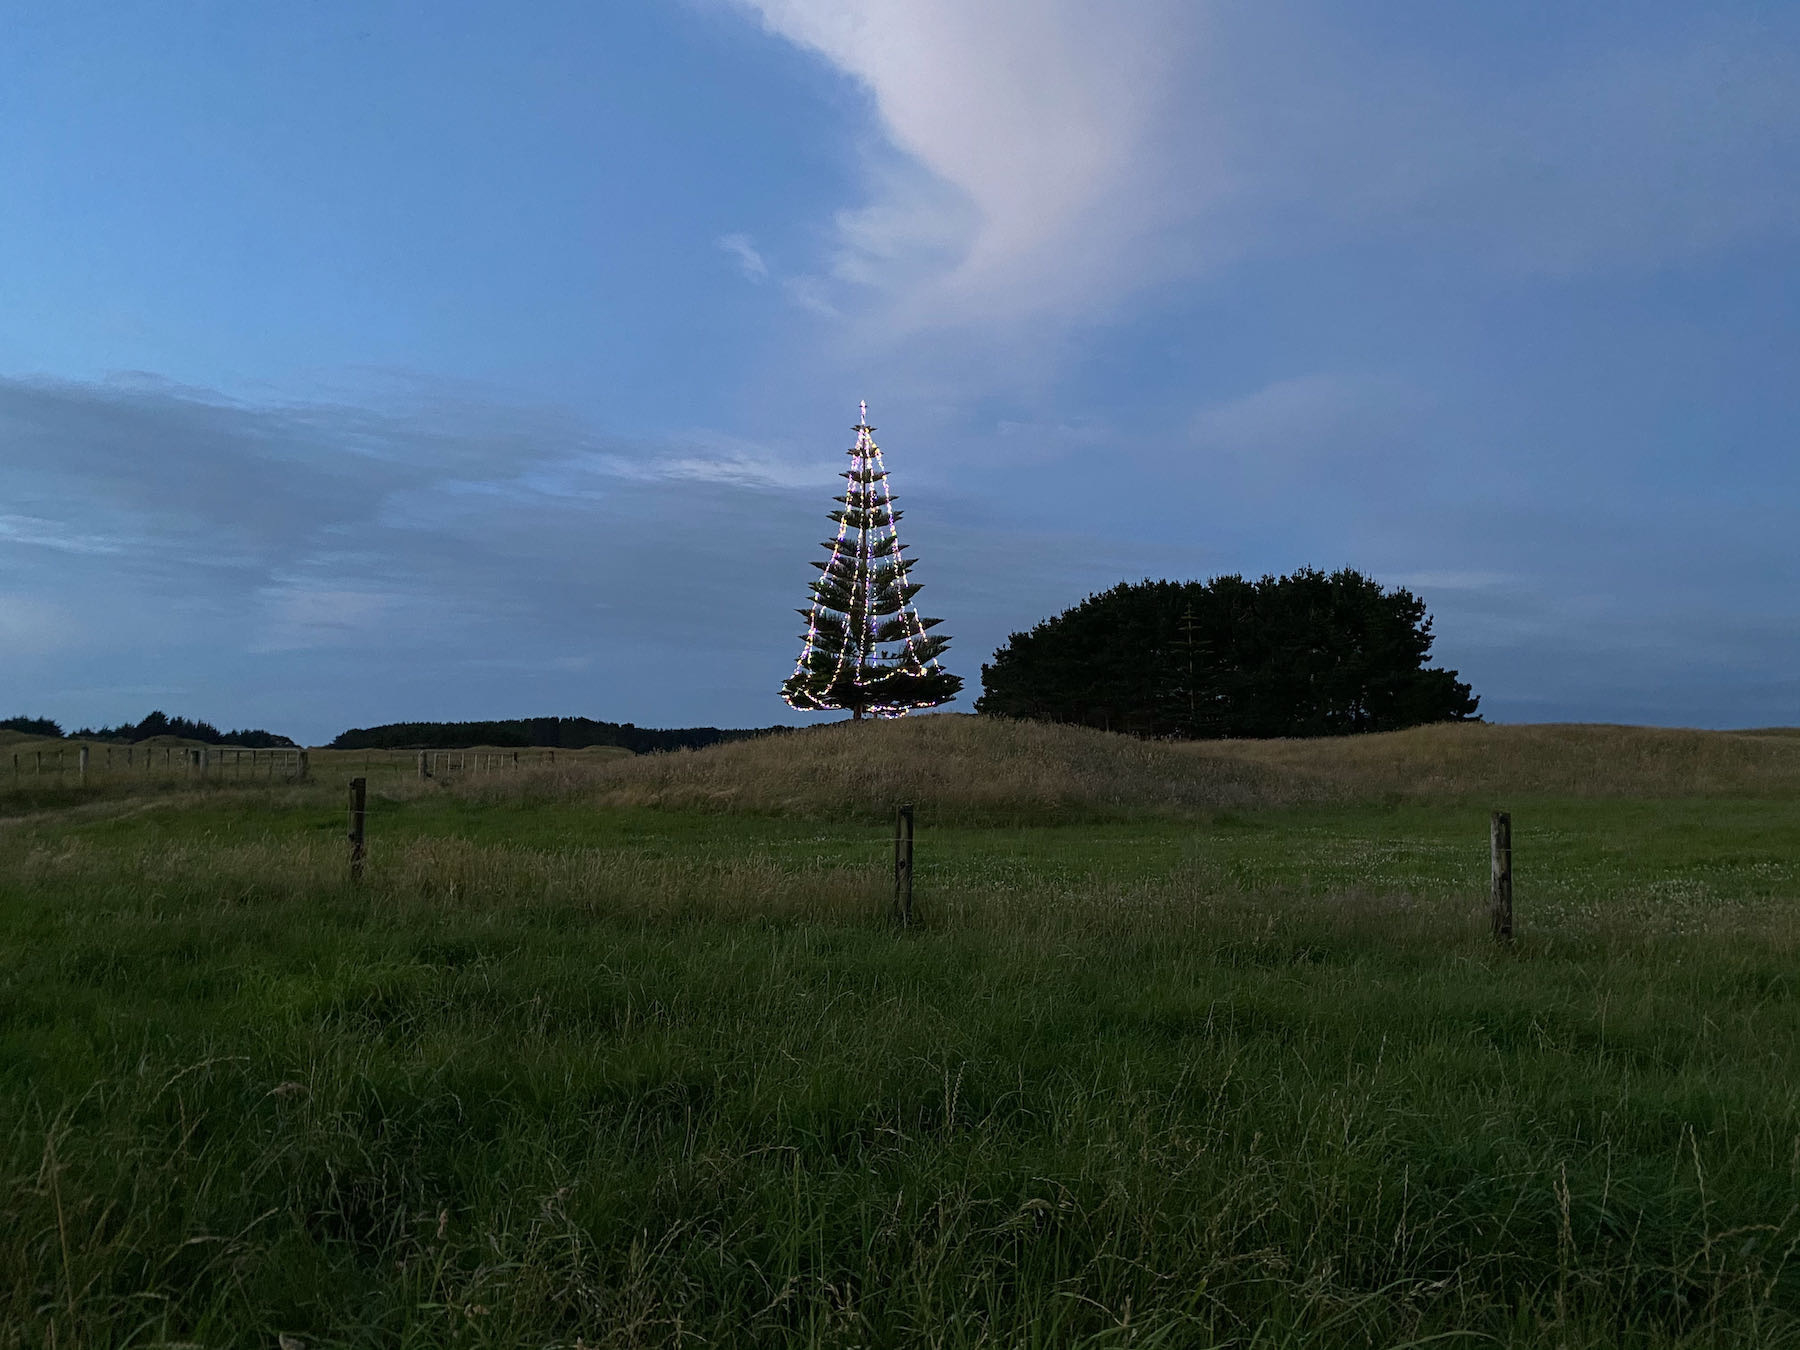 Large tree covered with lights, alone in a paddock.